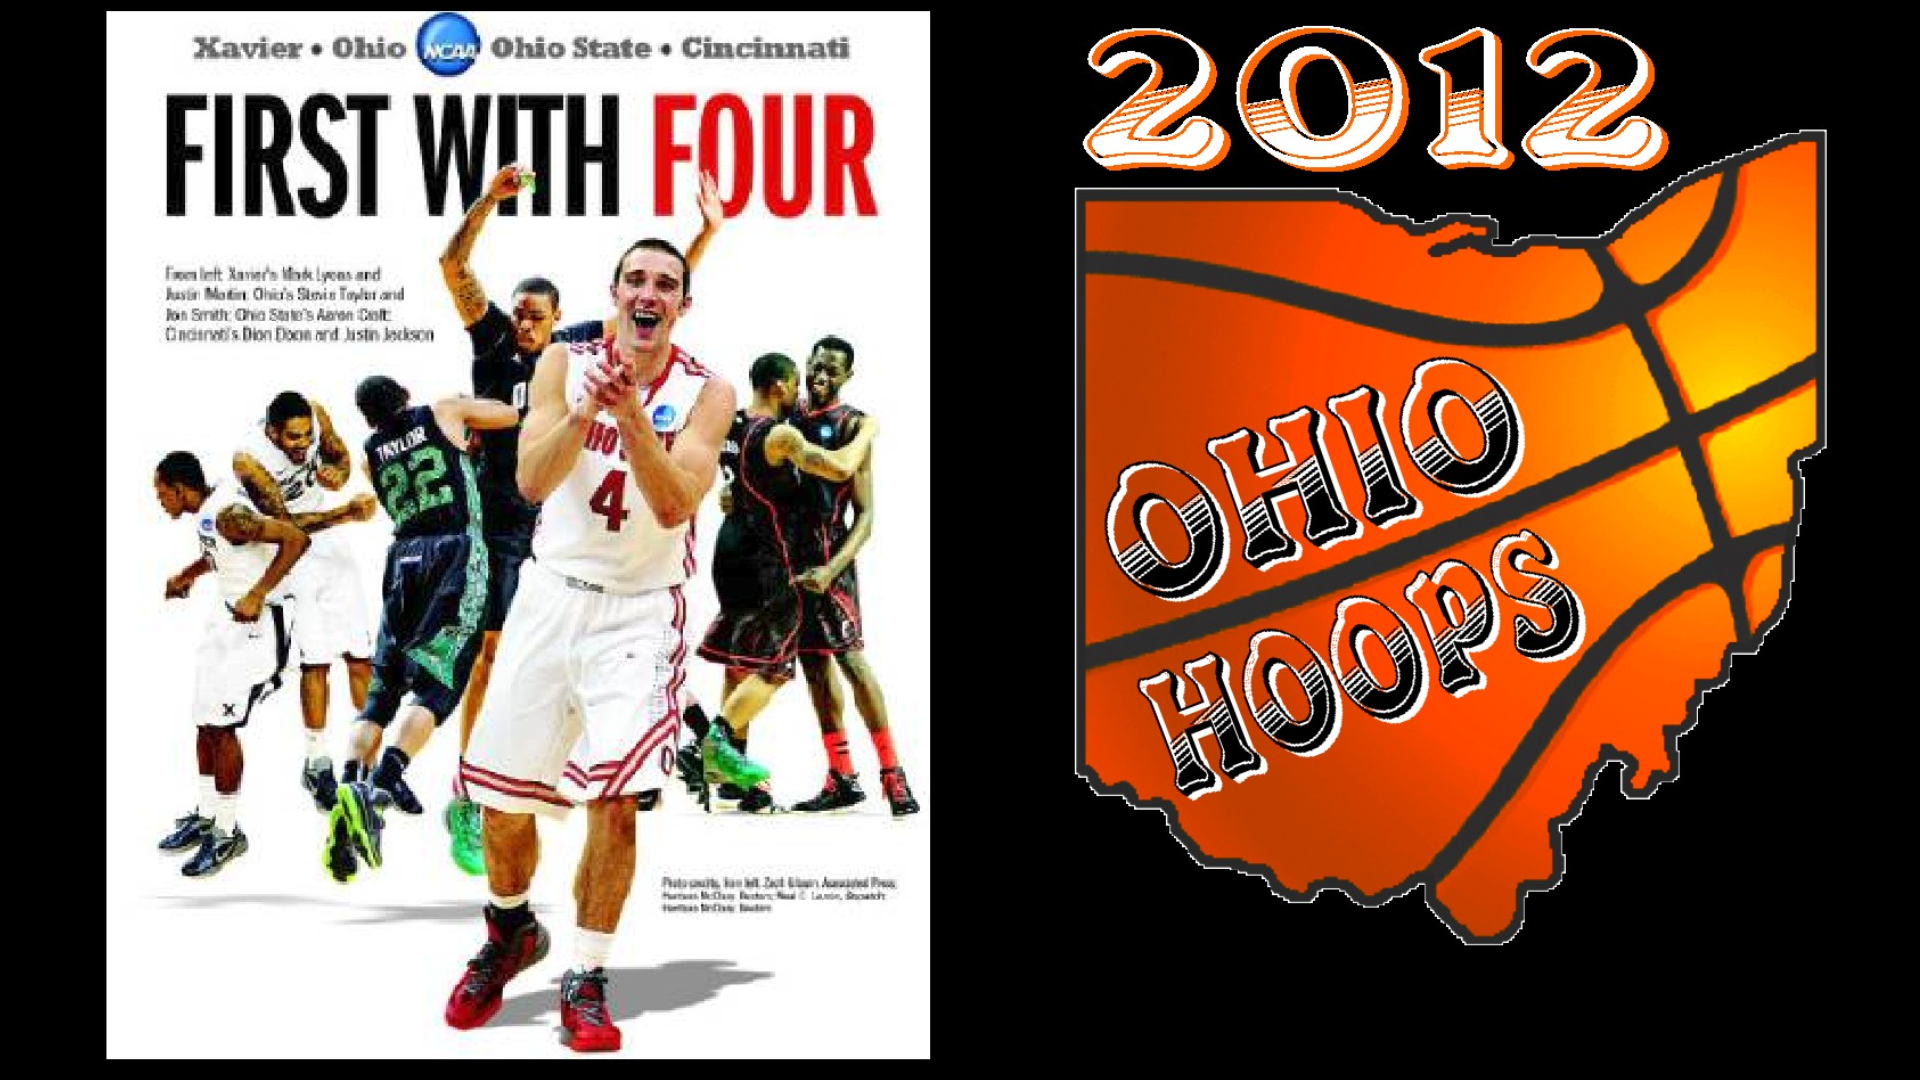 OHIO 1ST STATE WITH 4 TEAMS IN NCAA SWEET 16 2012